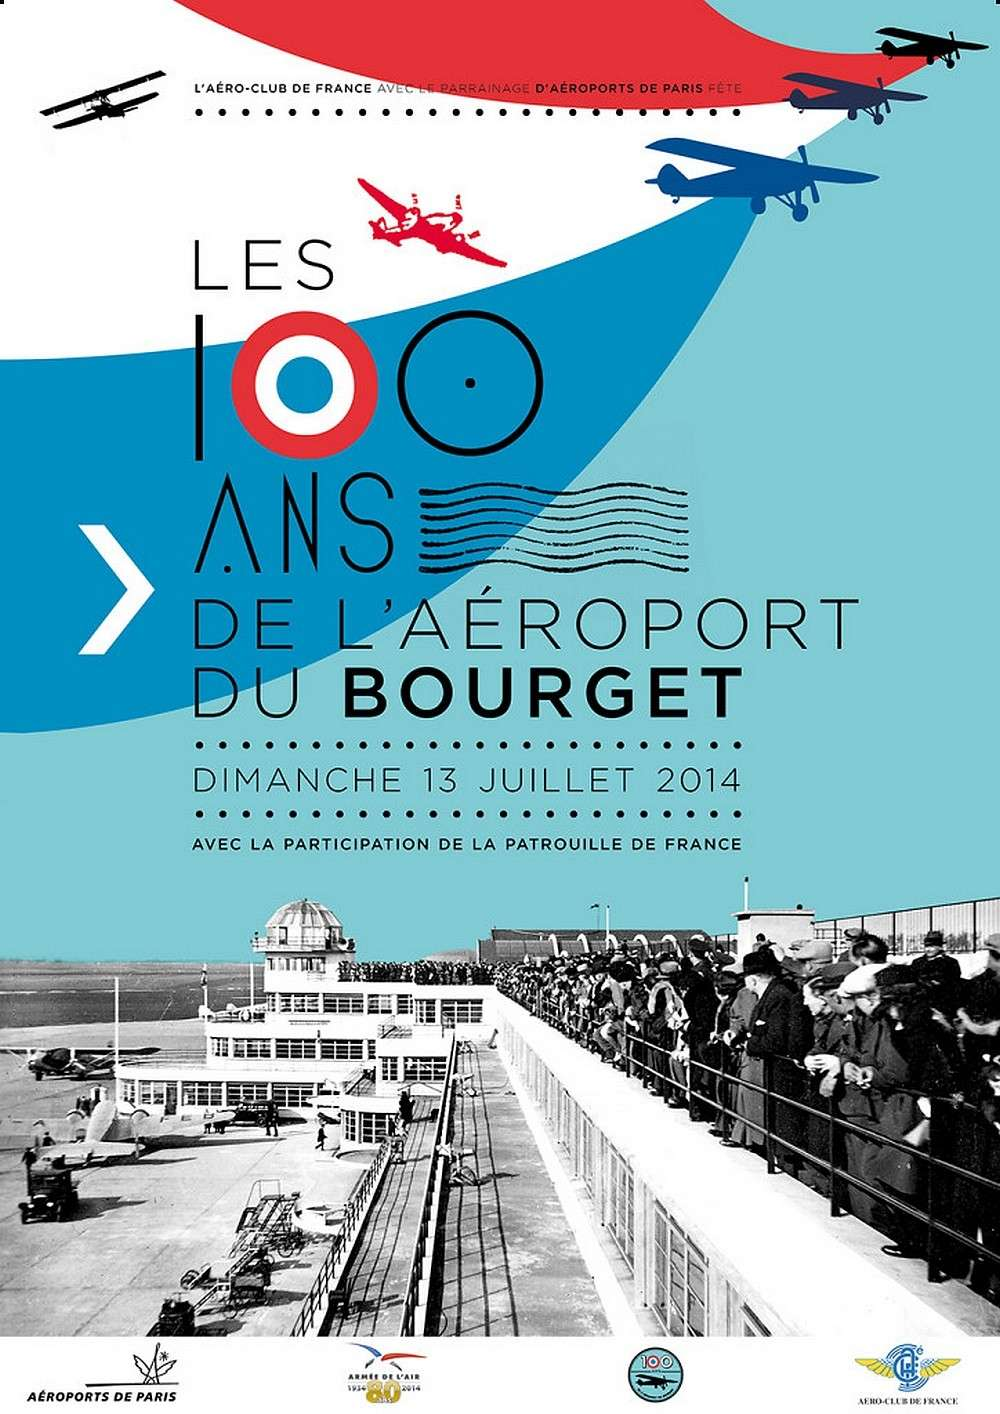 100 ans de l'Aeroport du Bourget , Meeting Aerien 2014,Manifestation Aerienne 2014, French Airshow 2014